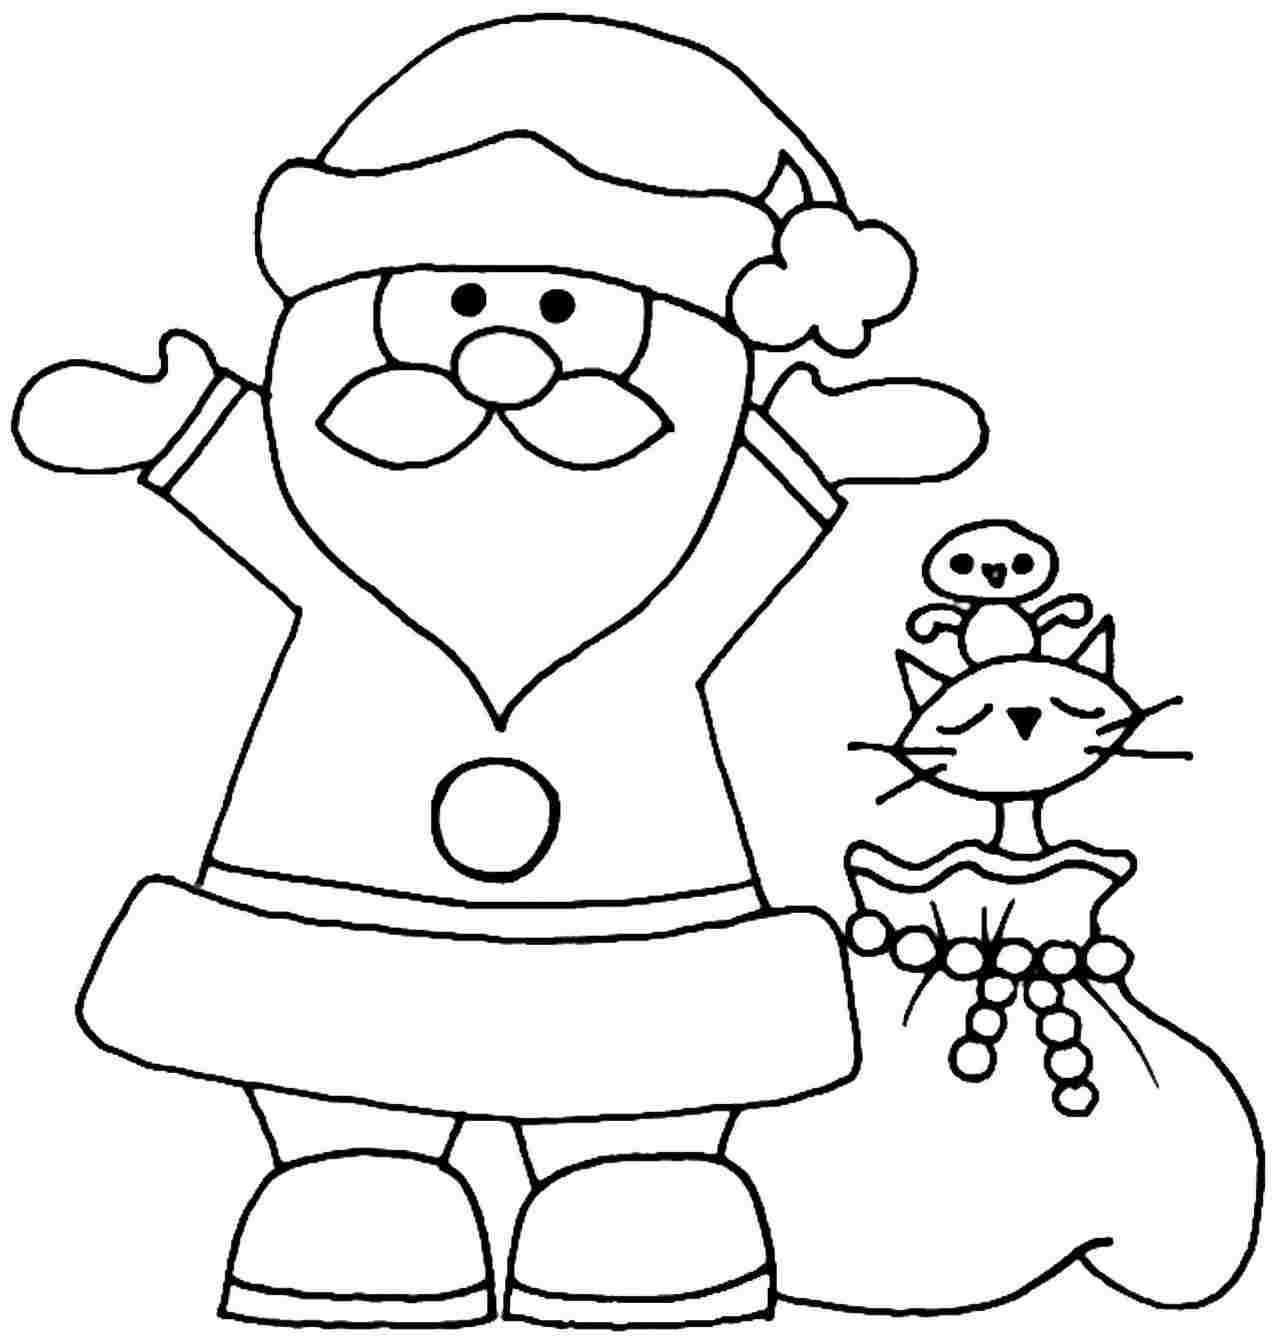 1277x1344 easy santa claus coloring merry christmas amp happy new year arts